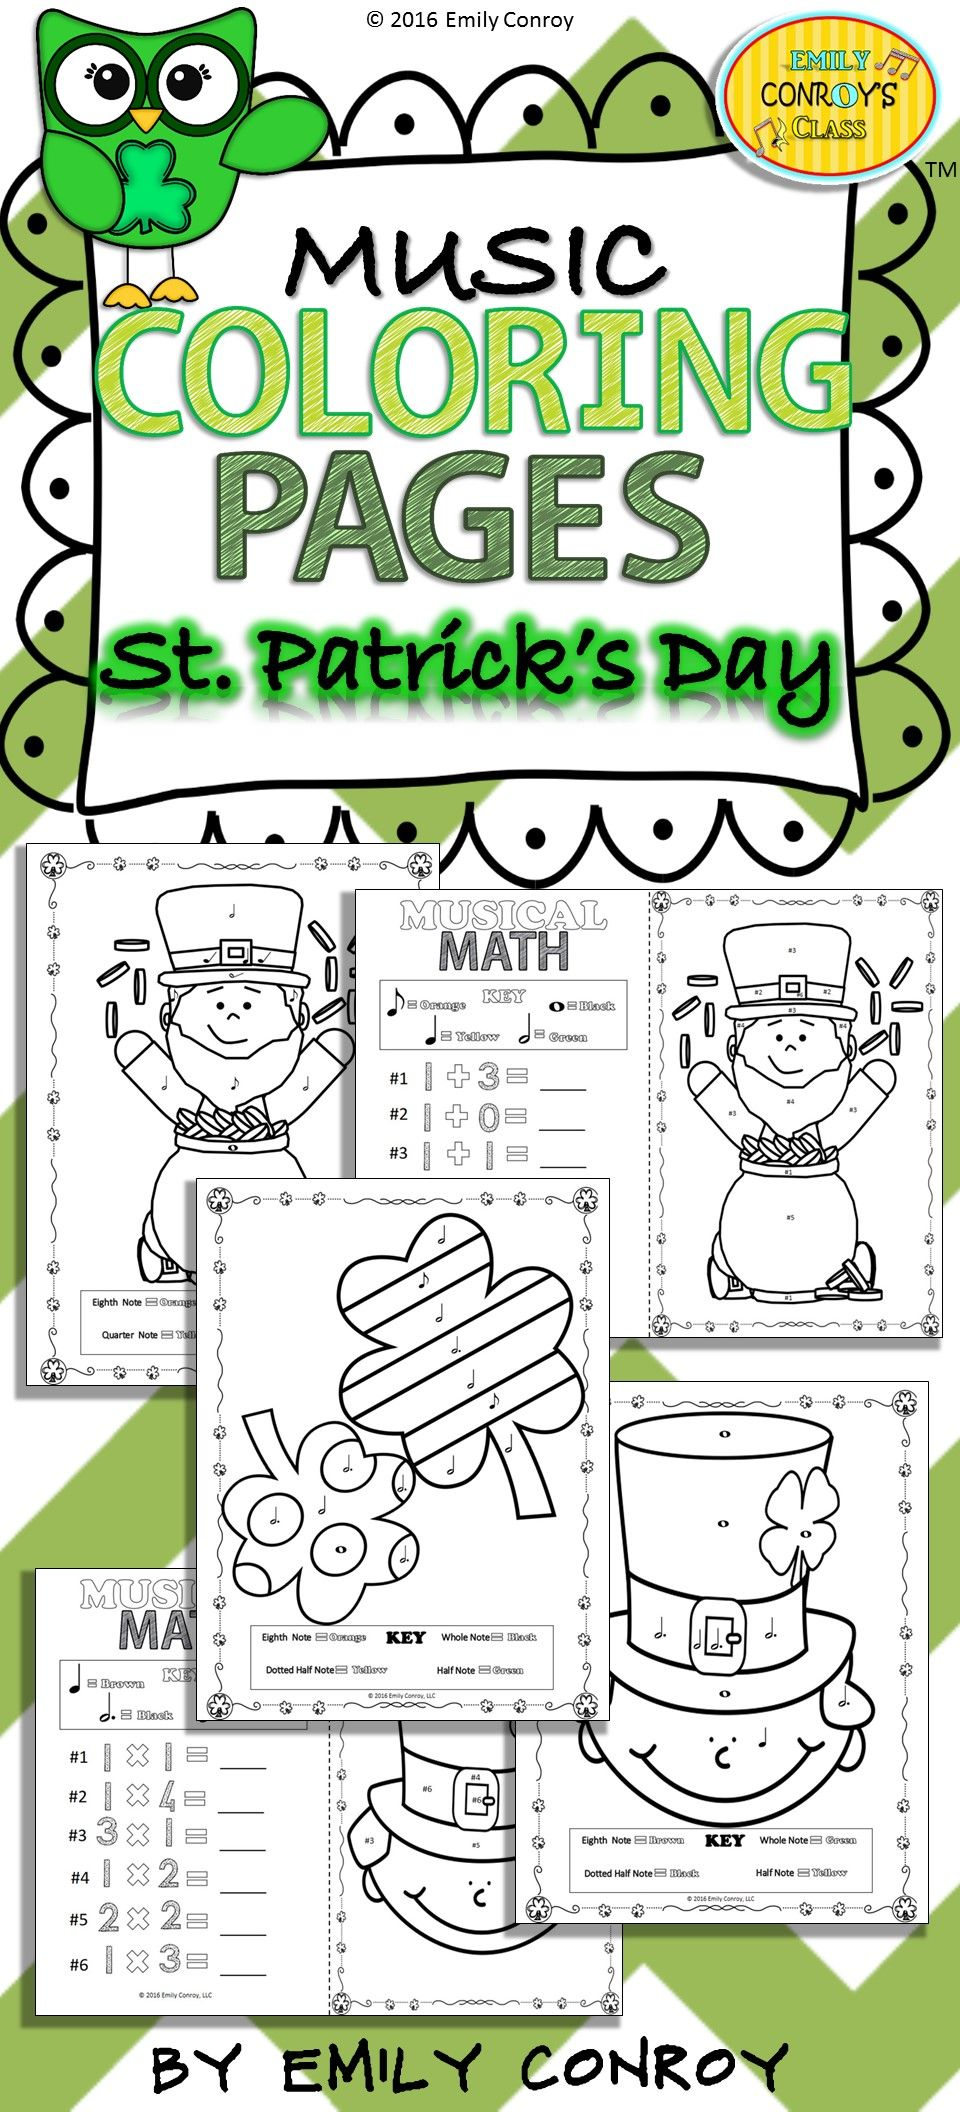 Music Coloring Pages (St. Patrick\'s Day) | Math, Elementary music ...